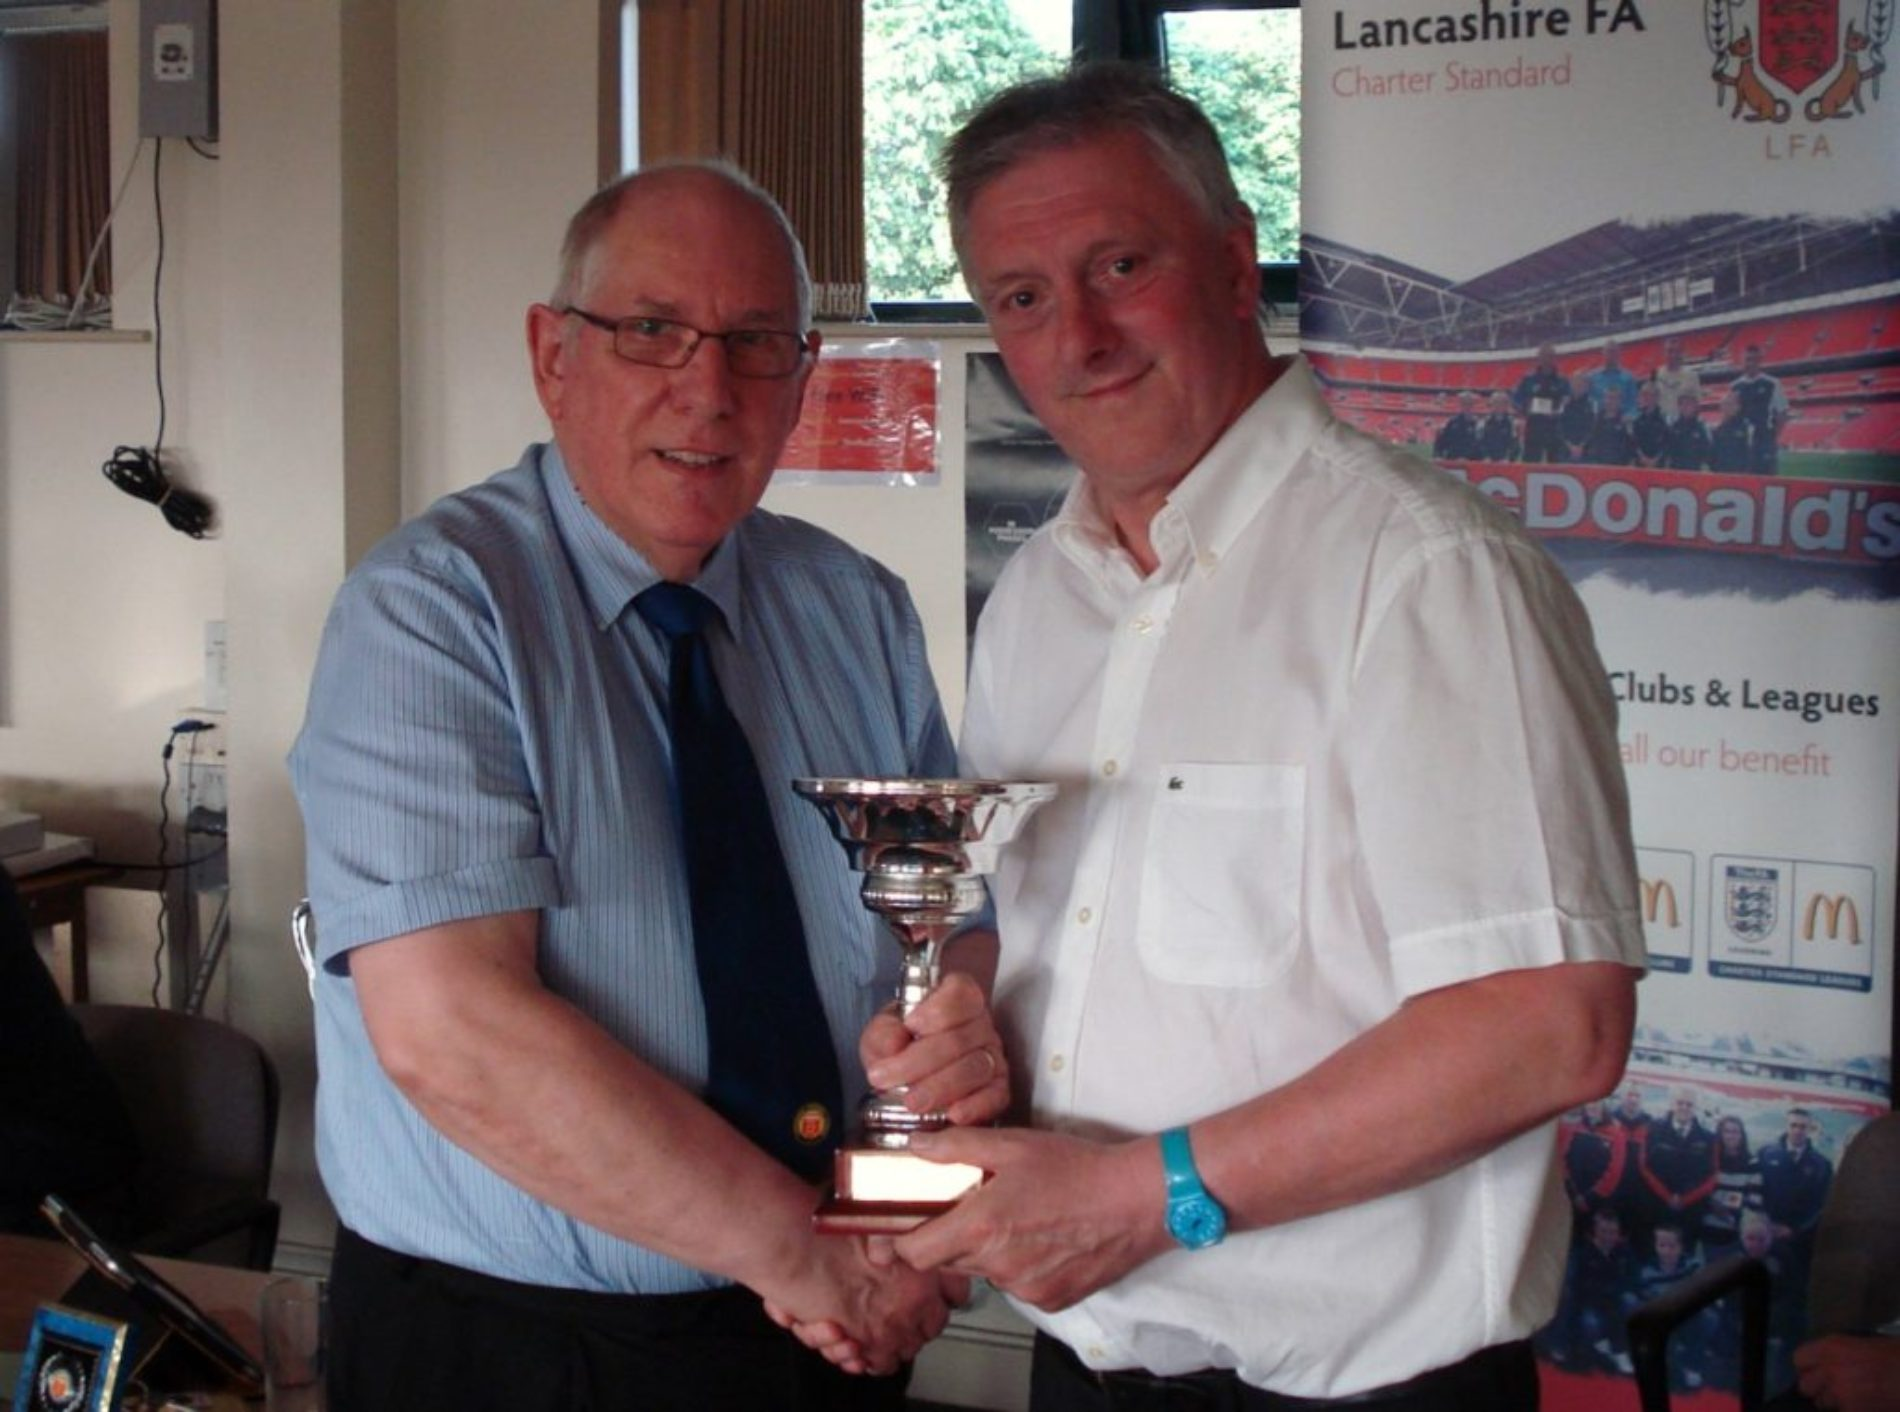 Congratulations to Southport FC's long serving secretary Ken Hilton who has received the prestigious Gary Parkinson Trophy at the Lancashire League AGM for his contributions and long service to the league. Ken has been secretary at Southport for over 20 years.